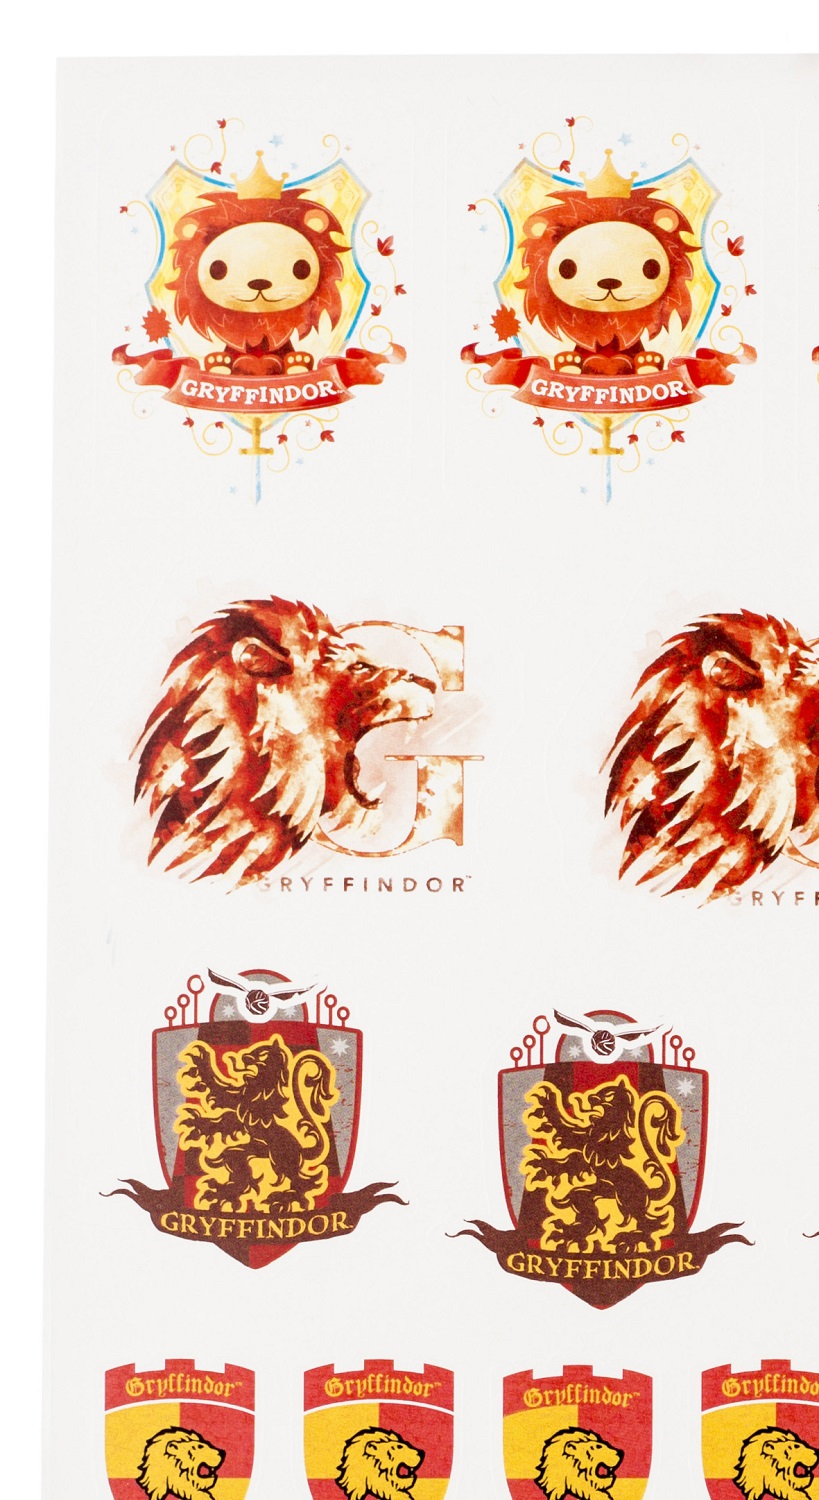 ConQuest HP Gryffindor House Sticker Set close-up baby lion crest